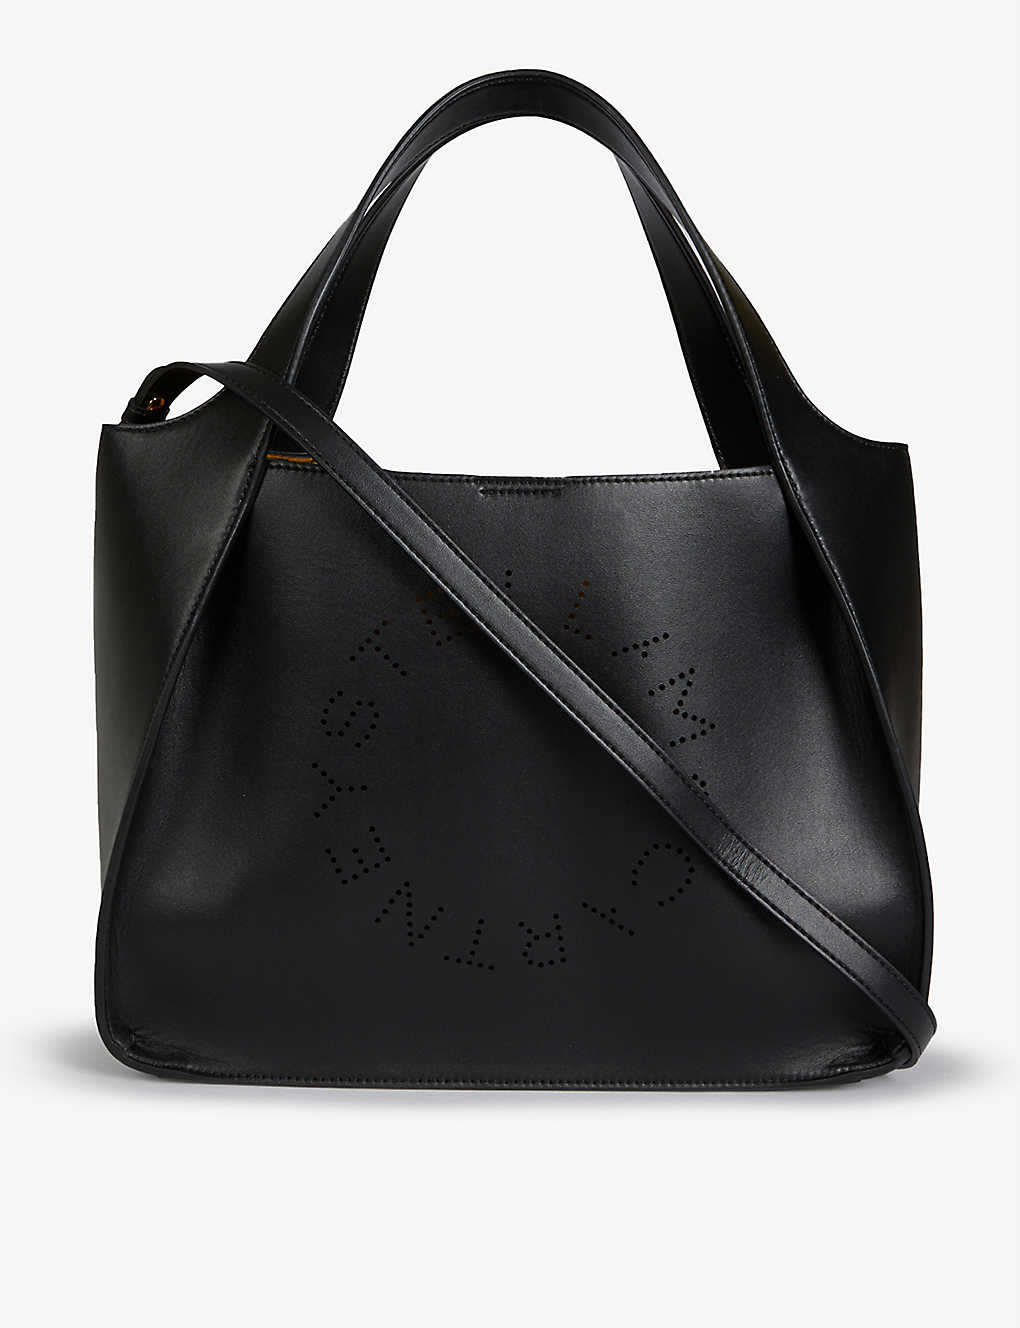 STELLA MCCARTNEY: Circle logo faux leather shoulder bag